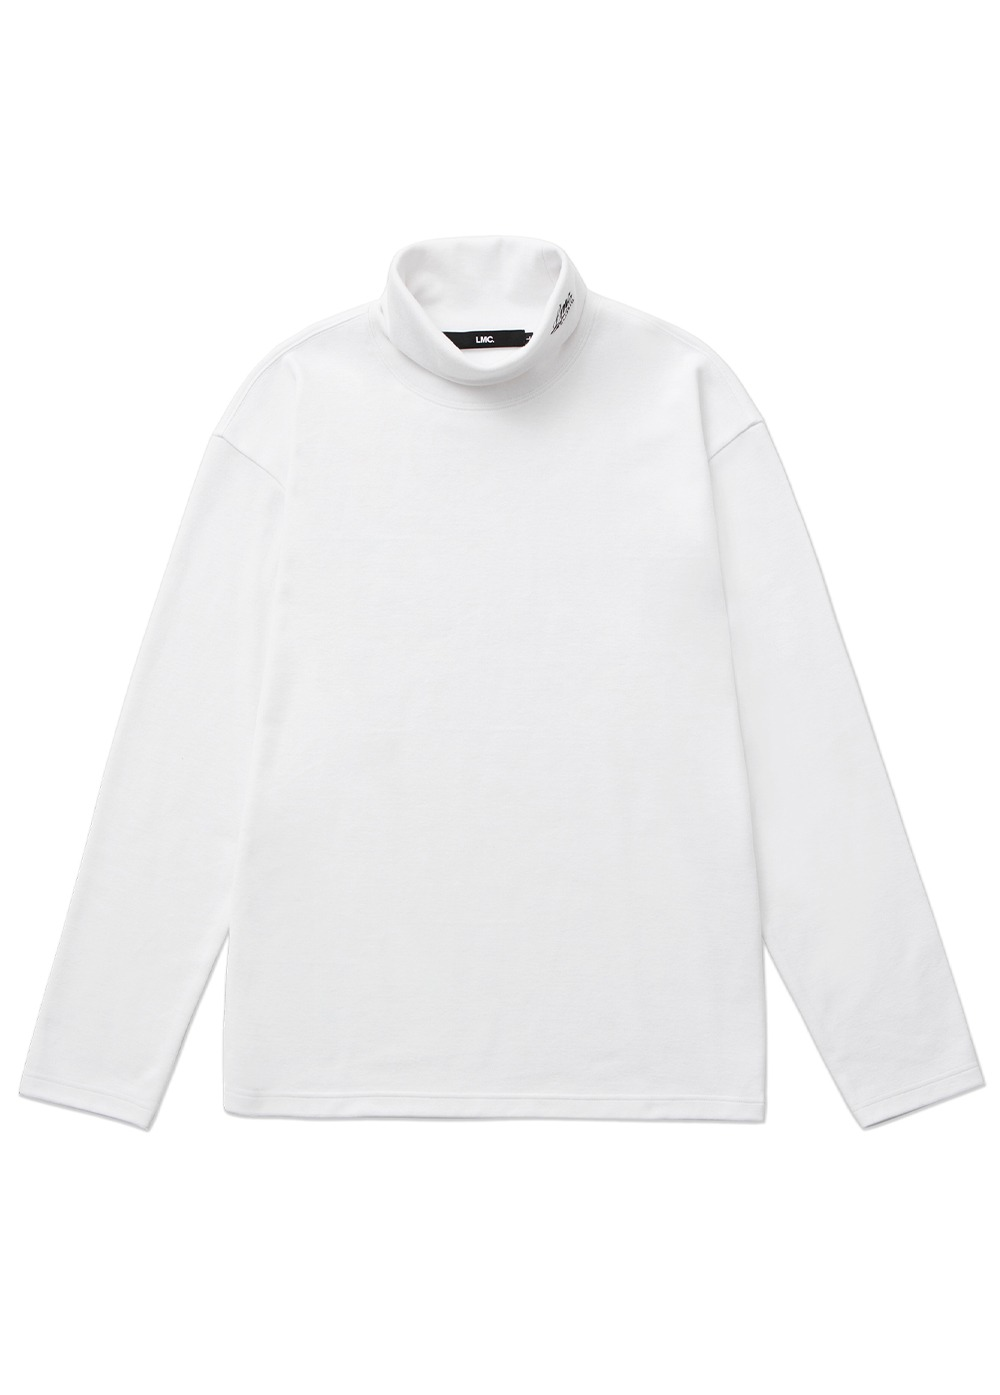 LMC CLASSIC HIGH NECK LONG SLV TEE white